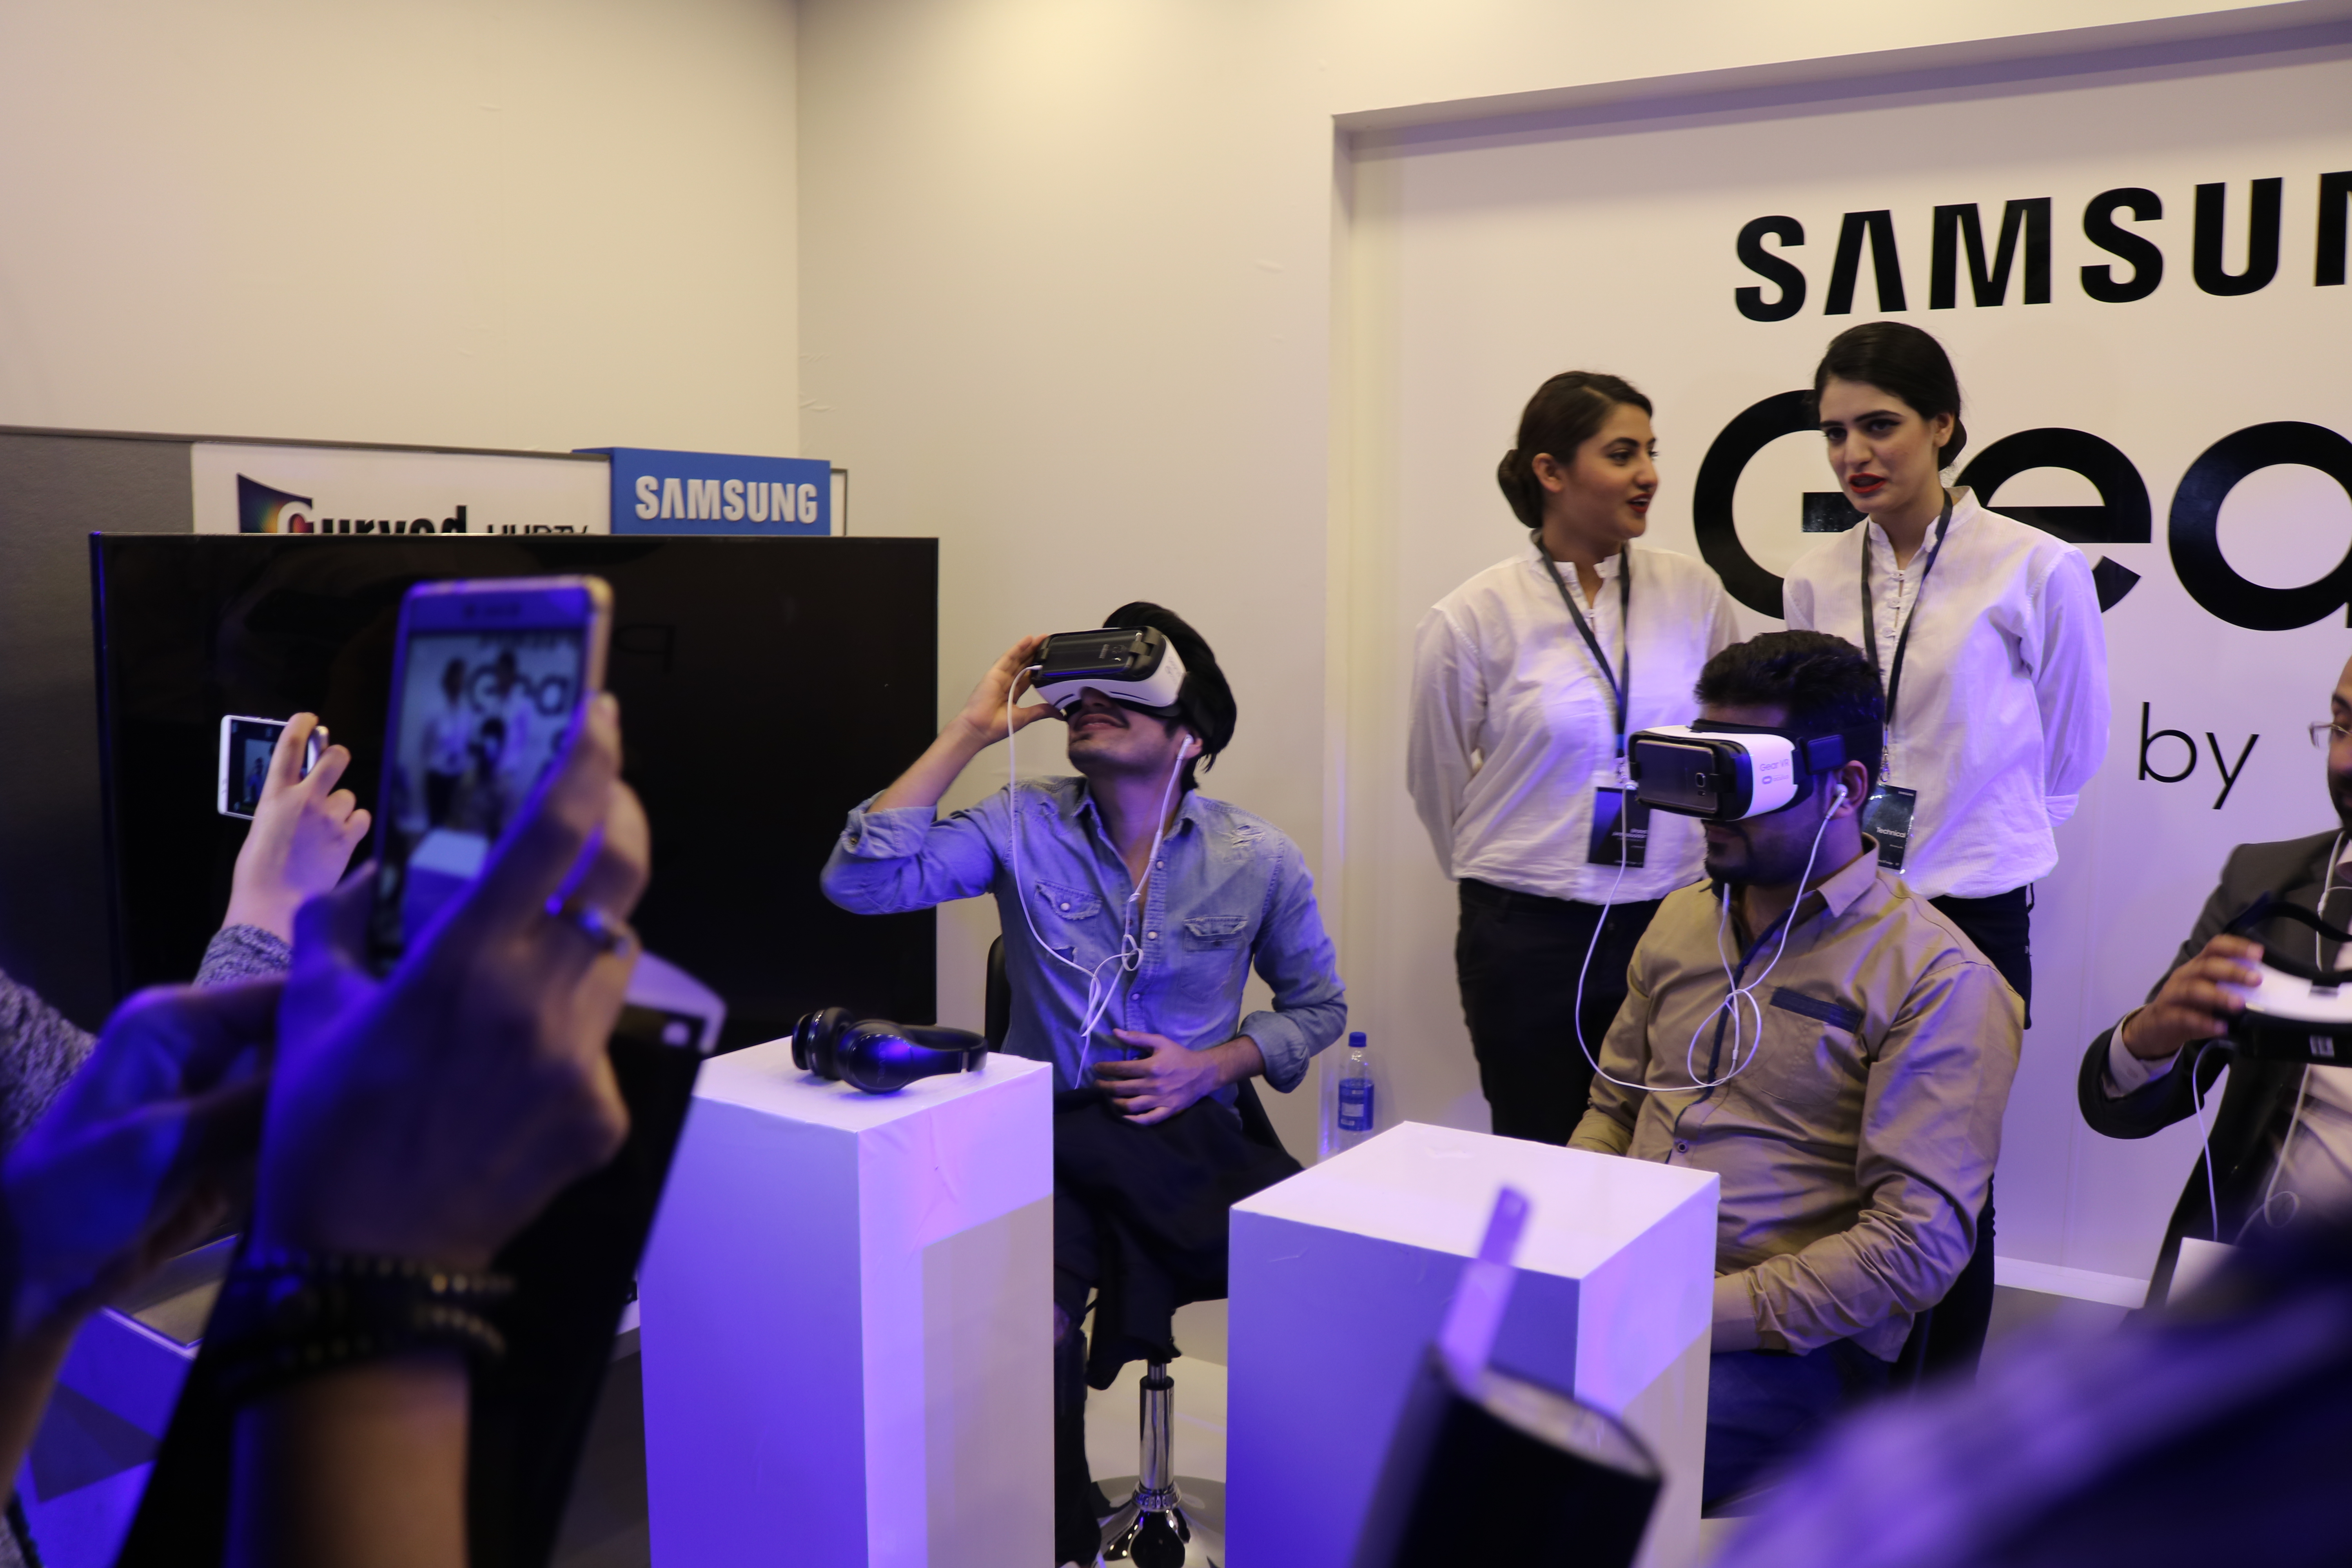 Samsung Organizes Launch Event of Samsung Galaxy S7 & S7 Edge at CineStar IMAX Lahore